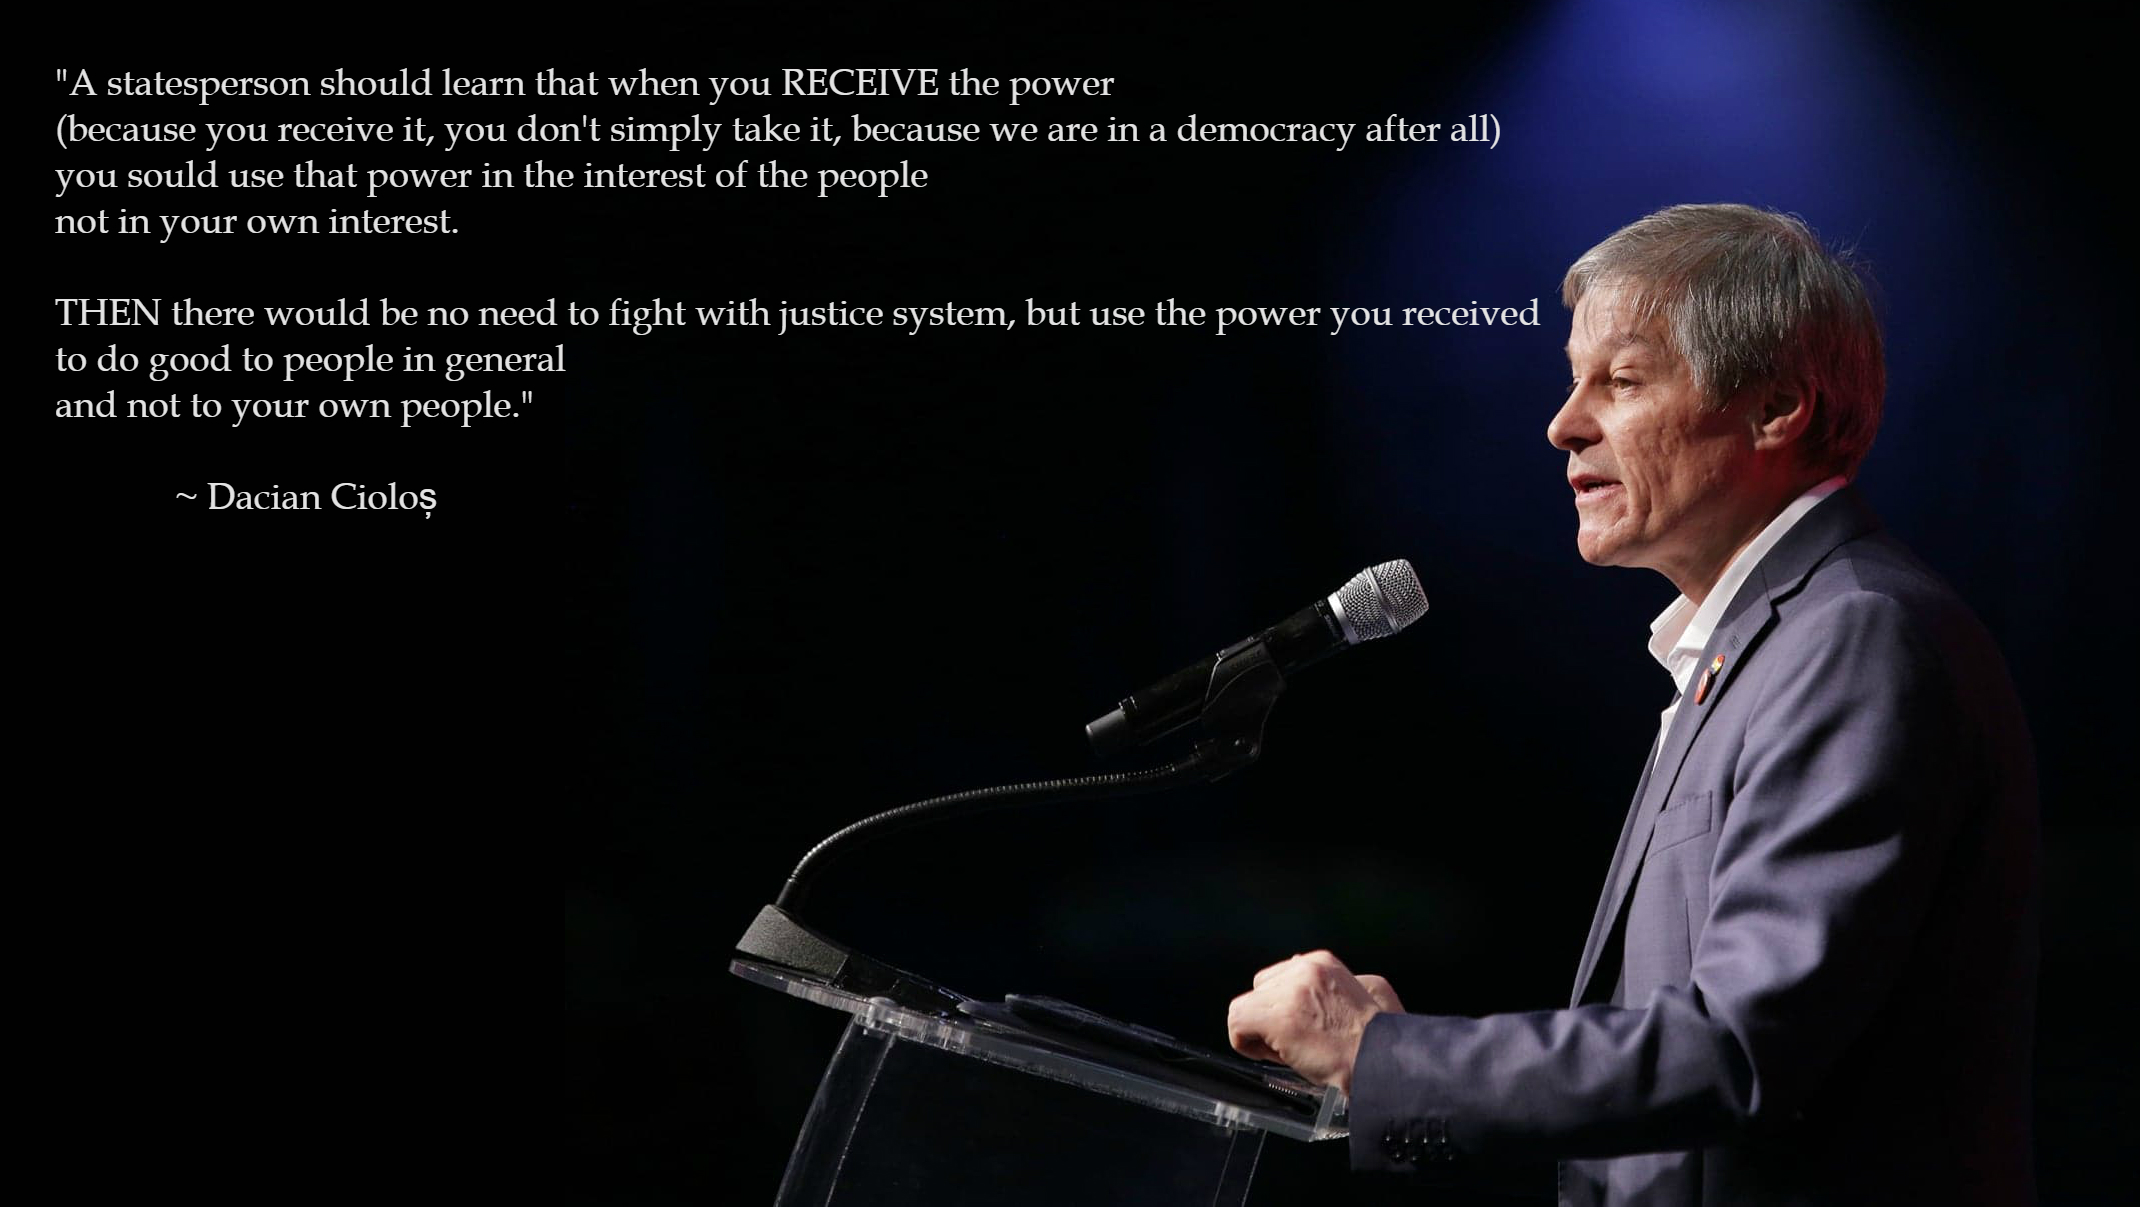 """A statesperson should learn that you should use the power you received from the people in the interest of the people, not in your own interest"" ~Dacian Cioloș [2140 x 1207]"